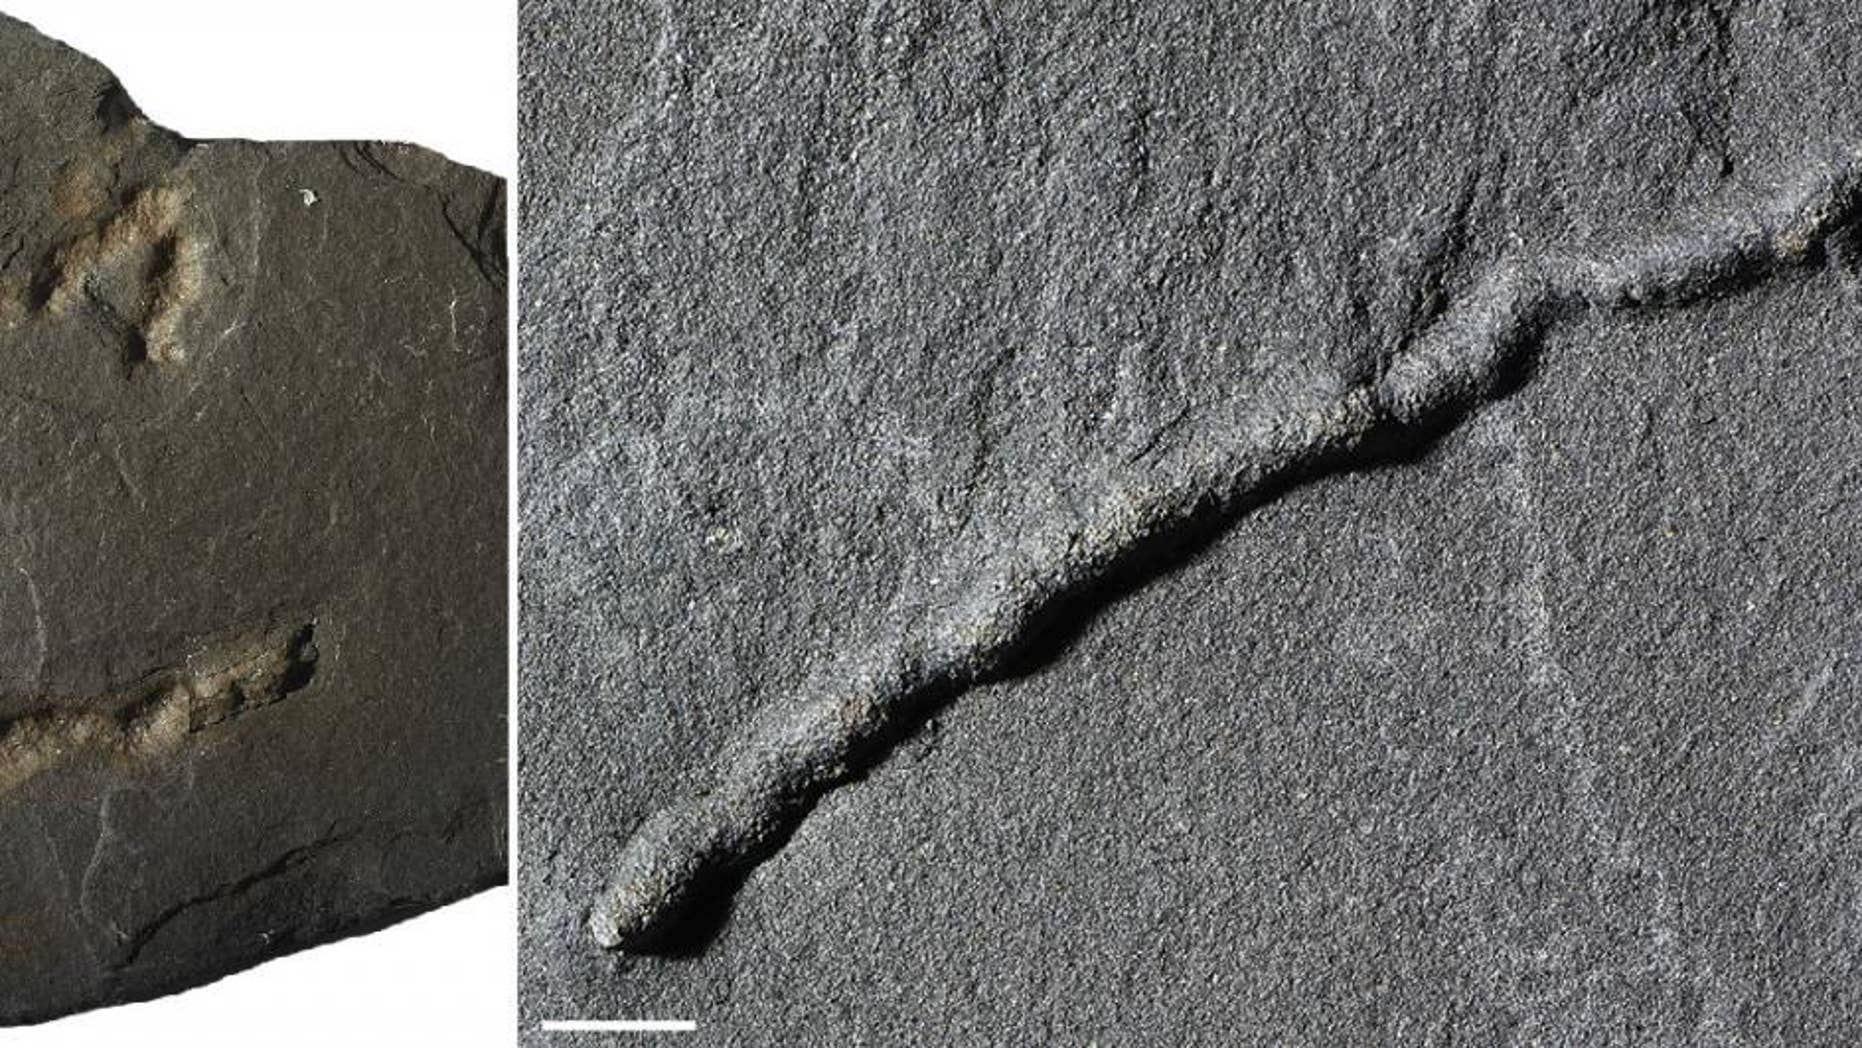 Until now, the oldest traces of motility (an organism's ability to move independently using metabolic energy) dated to about 600 million years ago. But now, newly analyzed fossils suggest that motility dates back to 2.1 billion years ago. (Scale bar: 1 centimeter, or 0.4 inches.)